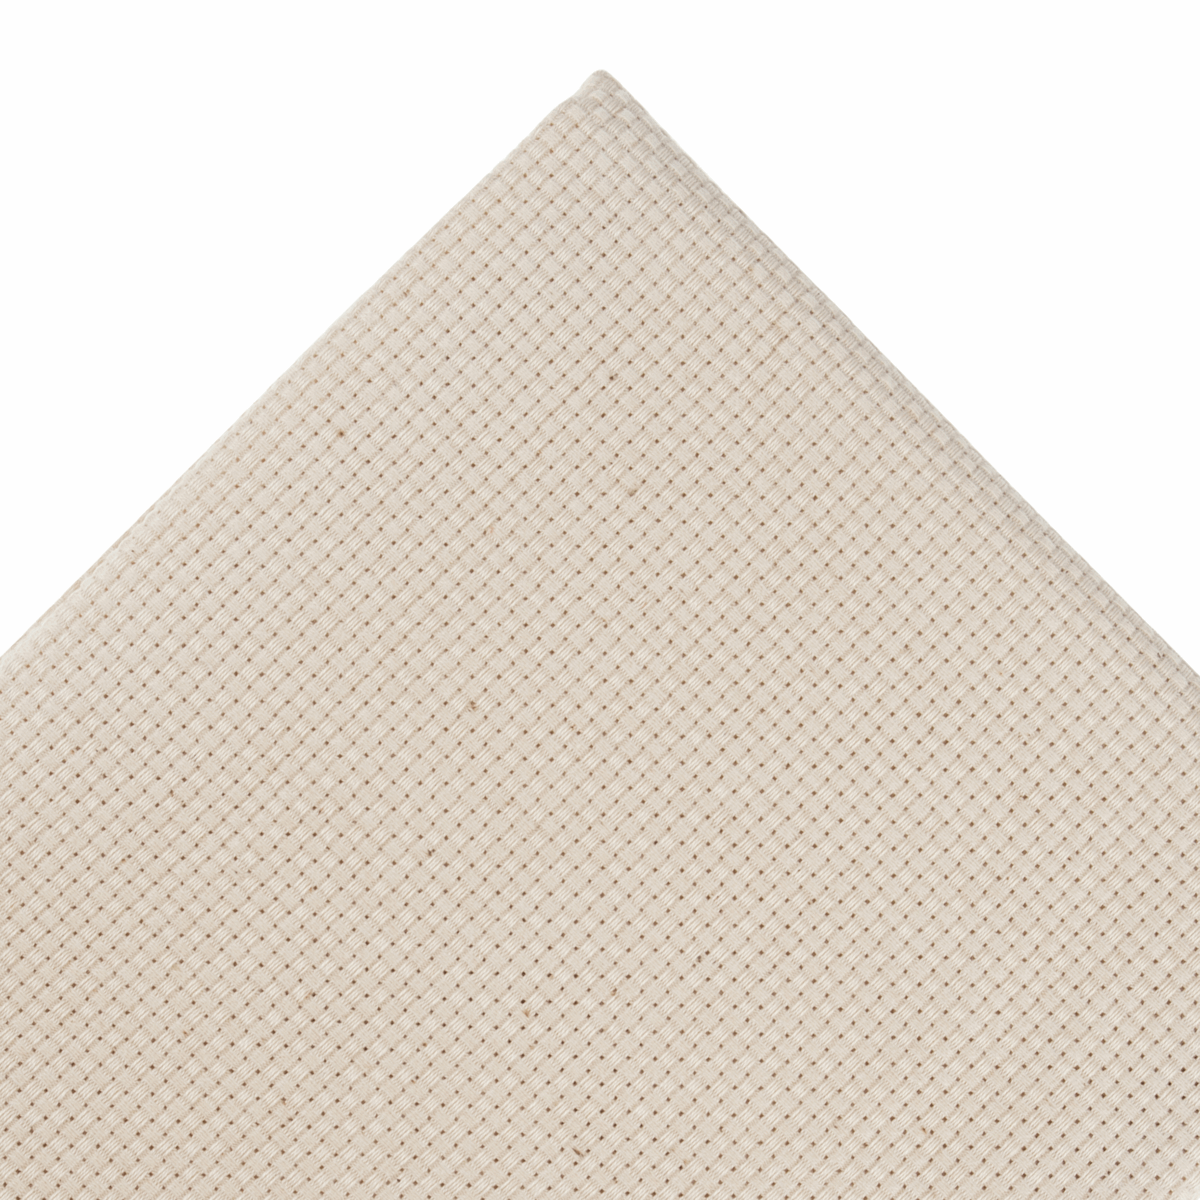 Picture of Punch Needle Fabric: 9 Count: 5m x 1.5m: Cream: Bolt